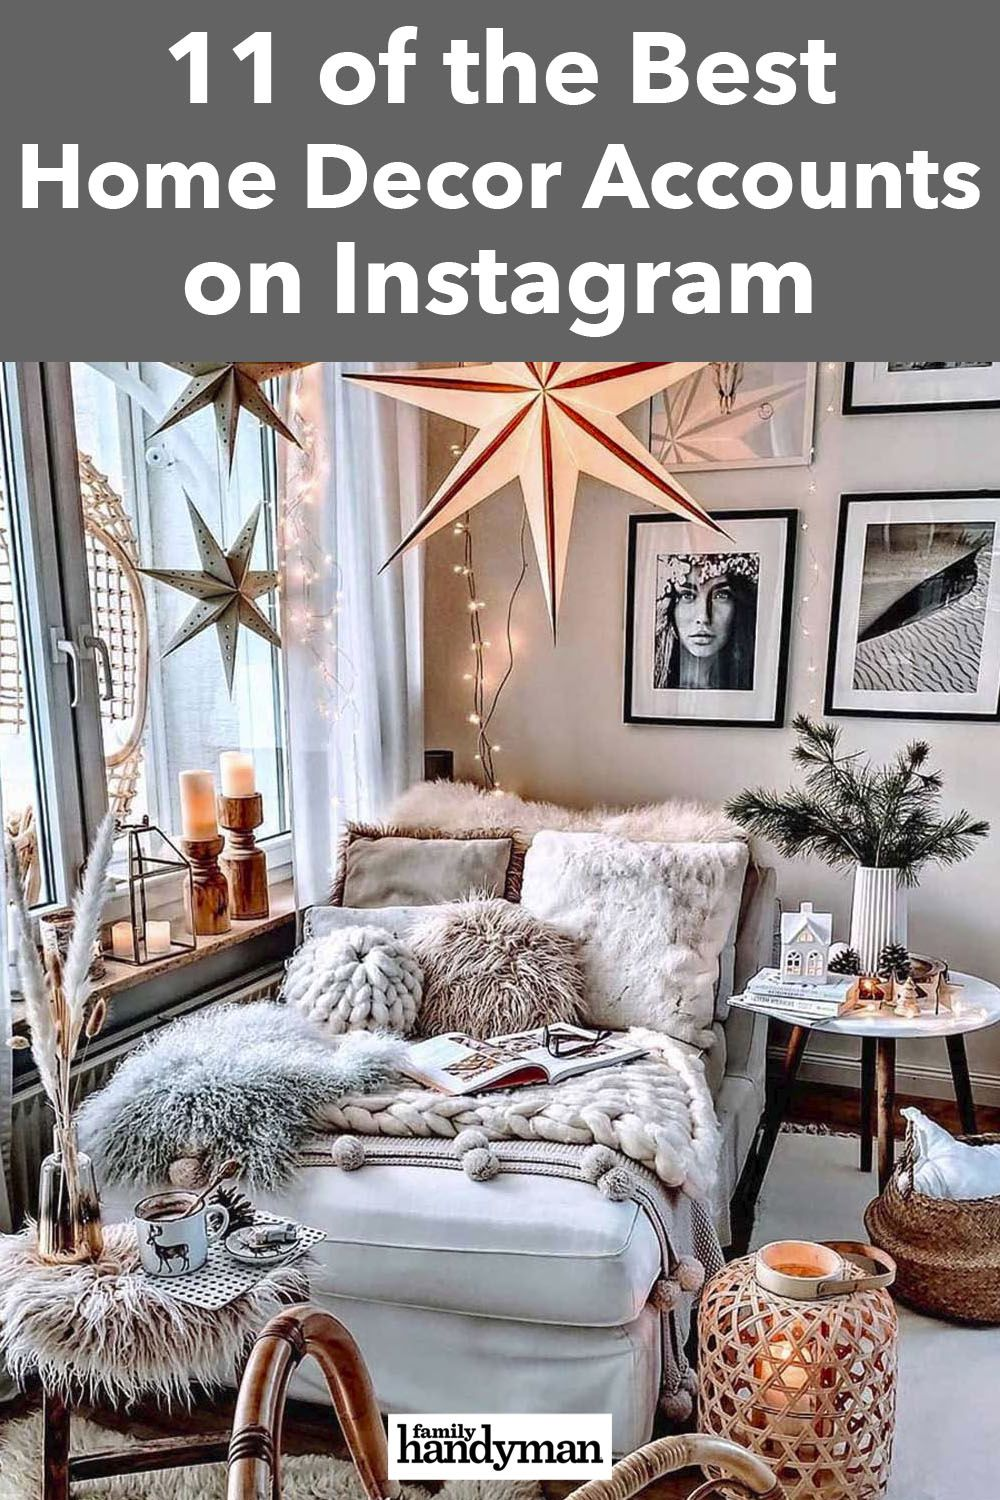 11 of the Best Home Decor Accounts on Instagram